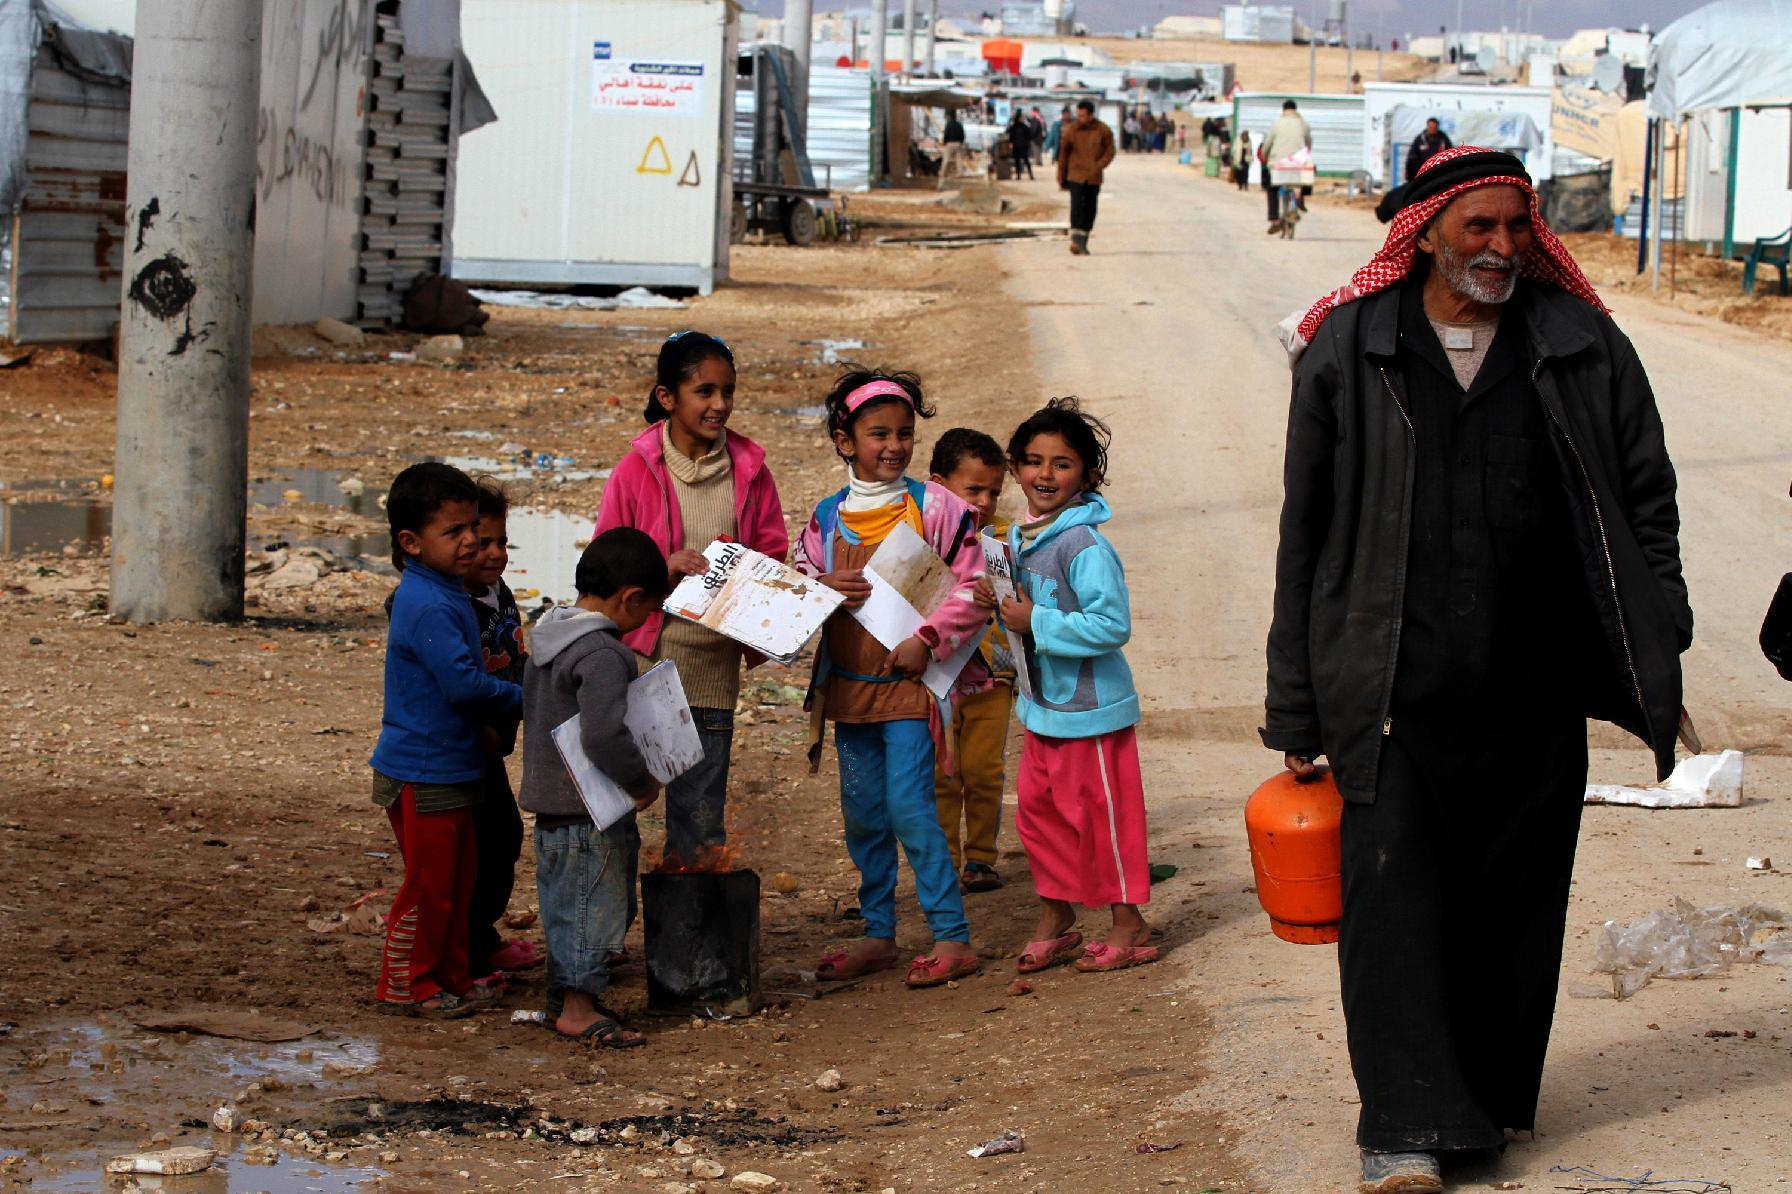 US looks to aid Syrian refugees amid security concerns